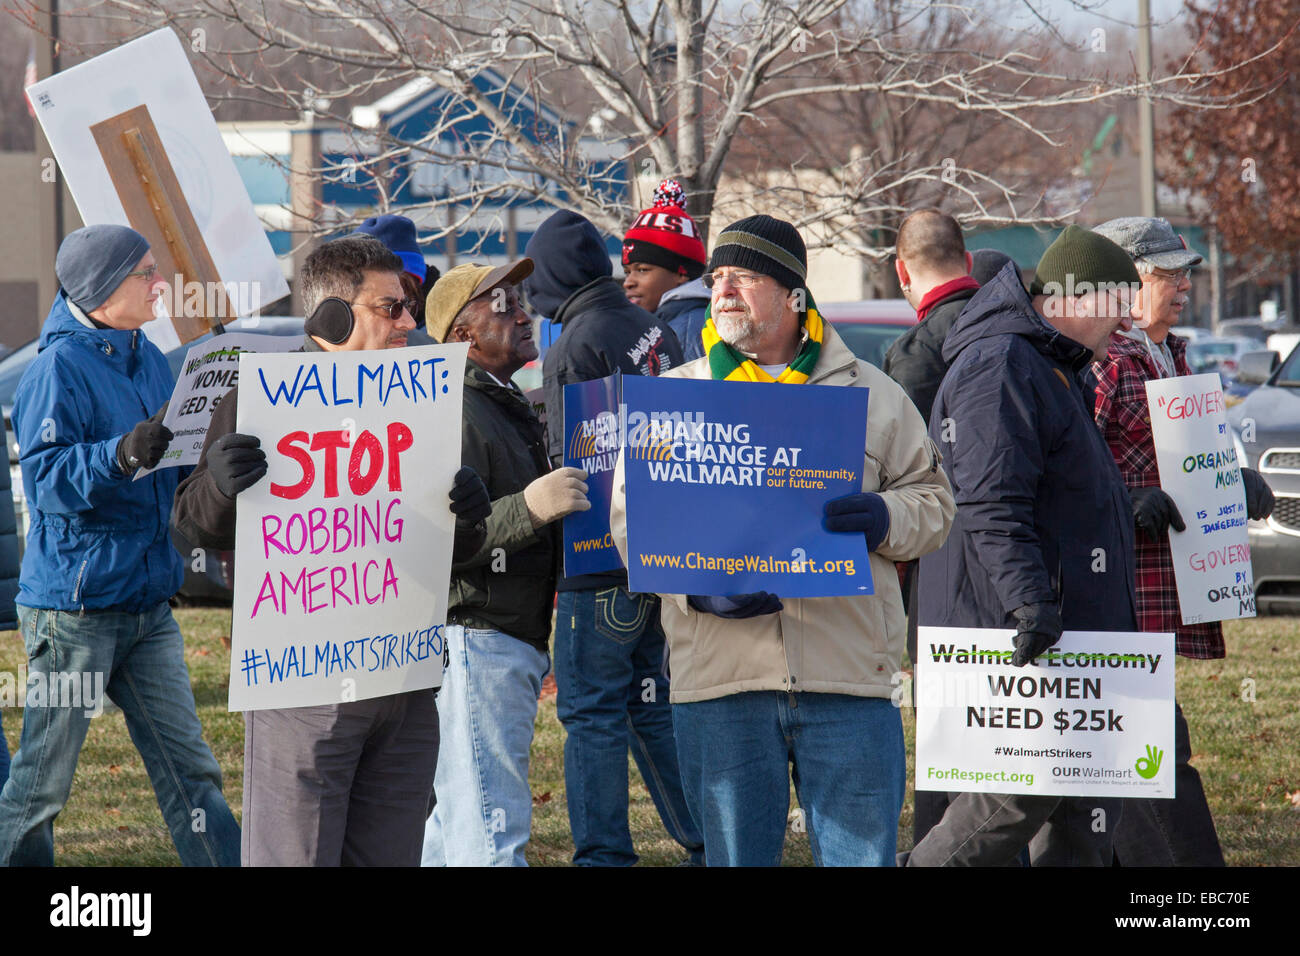 Sterling Heights, Michigan USA. 28th November, 2014. Labor activists picket a Walmart store on Black Friday, part - Stock Image